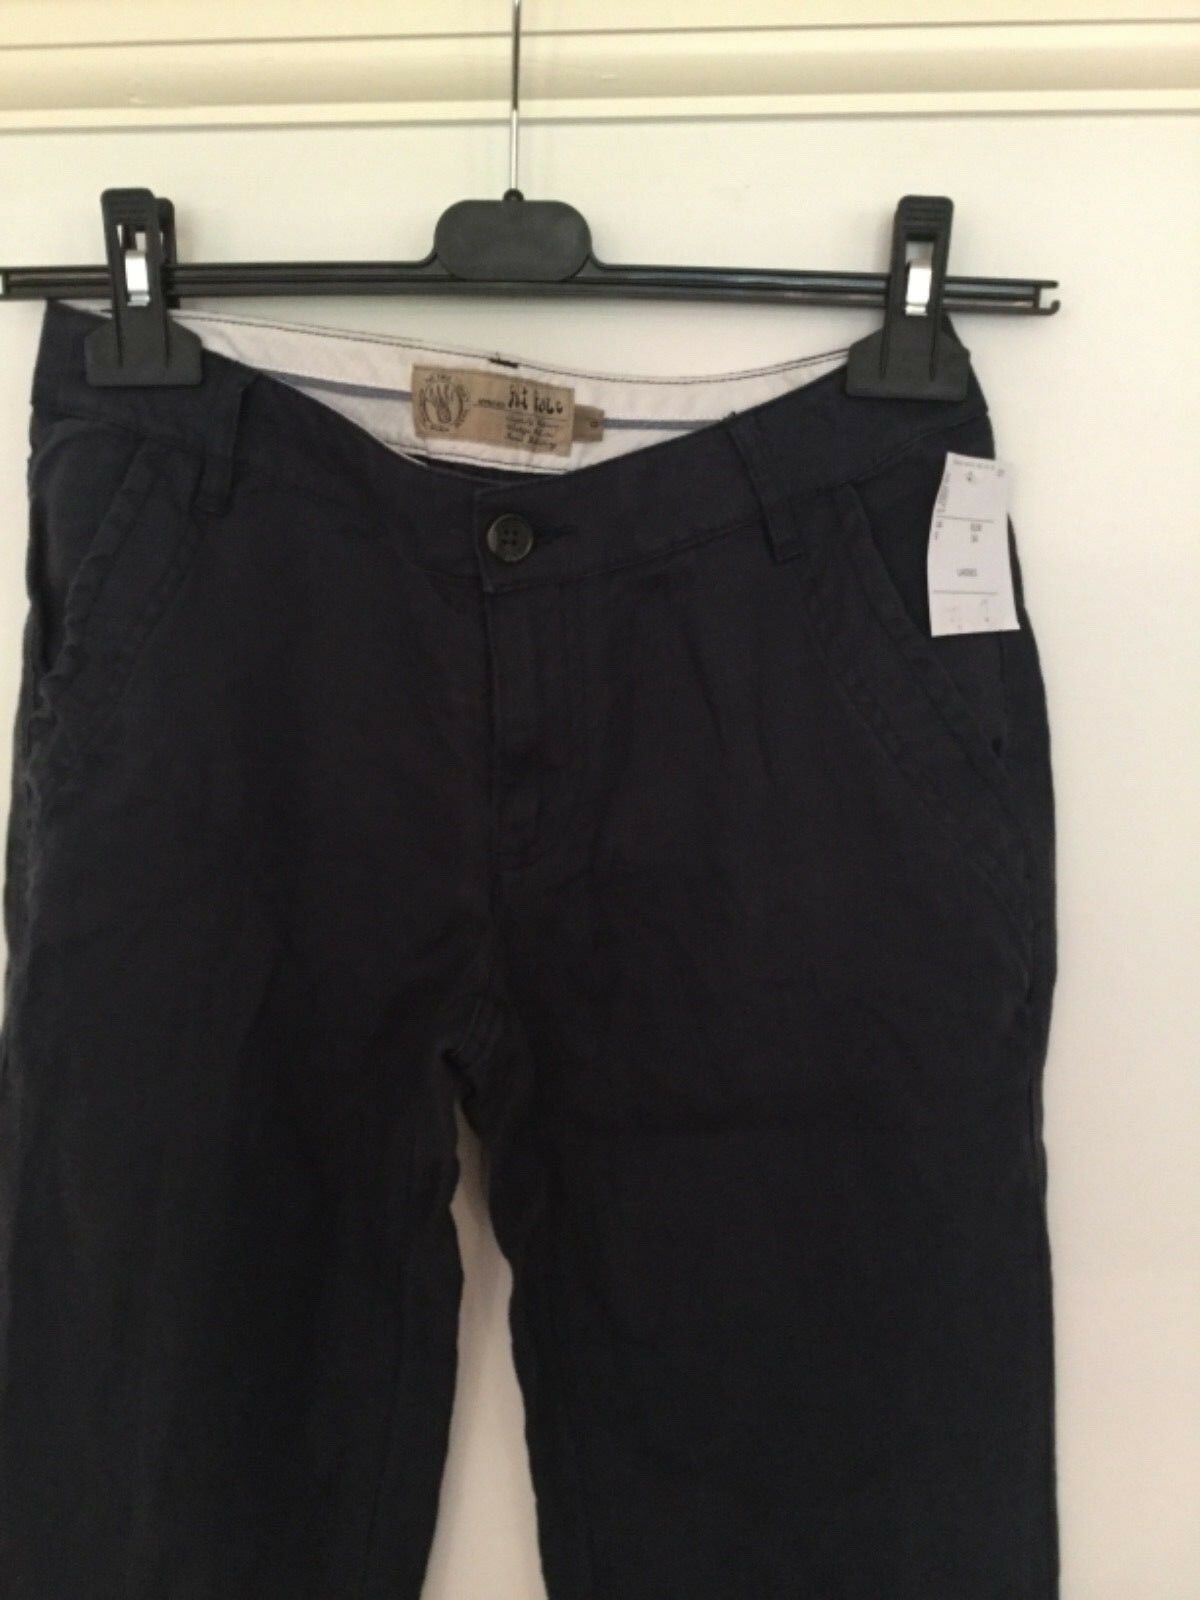 FAT FACE BNWTs, Girls Ladies Linen Trousers, Size 8, Navy bluee